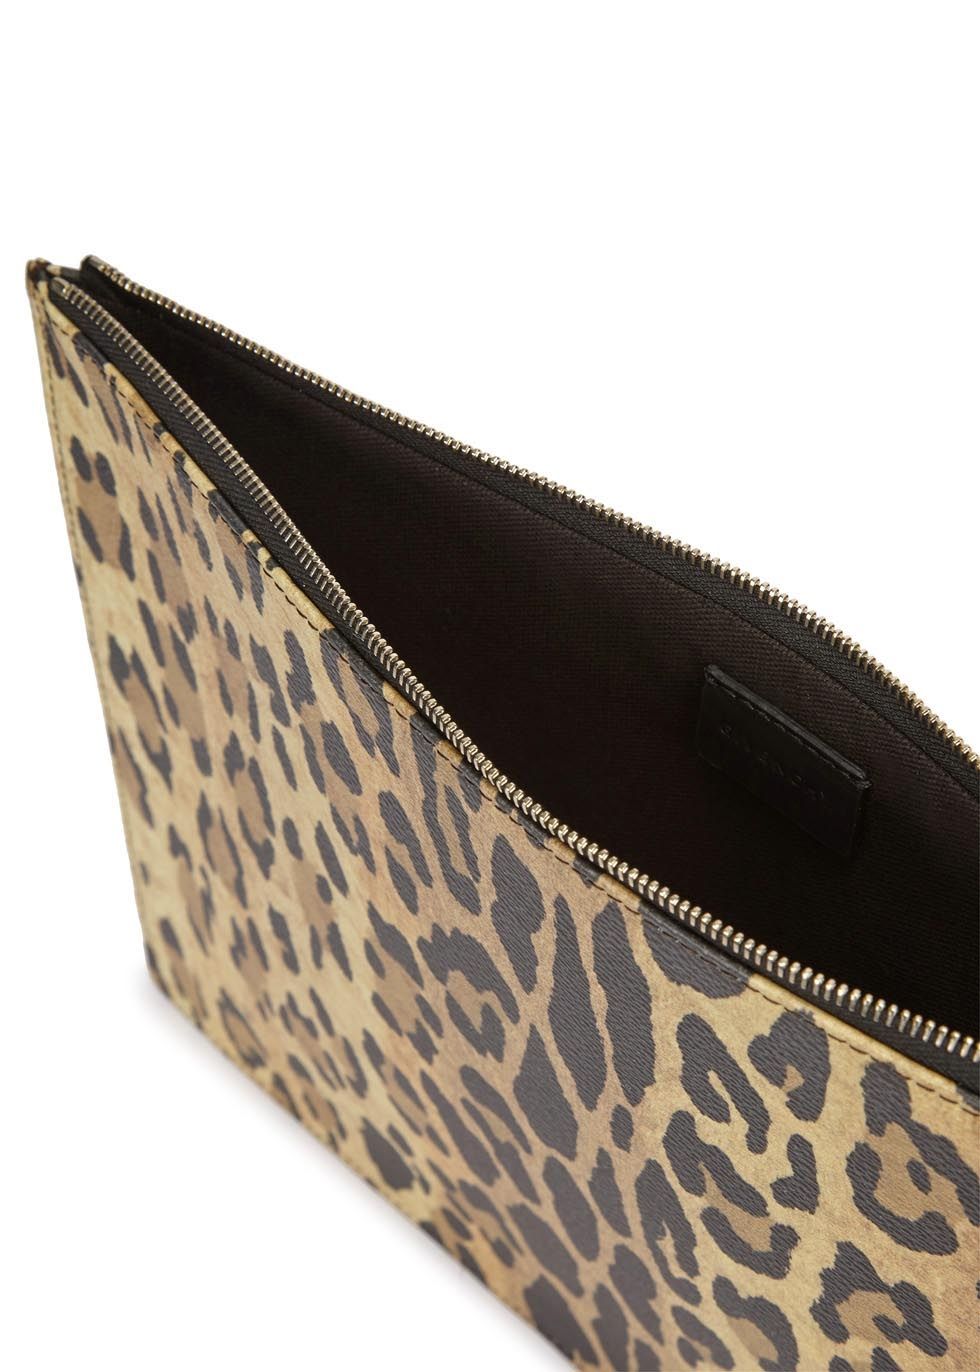 2abaa212b398 Givenchy Large Leopard-print Faux Leather Clutch - Lyst